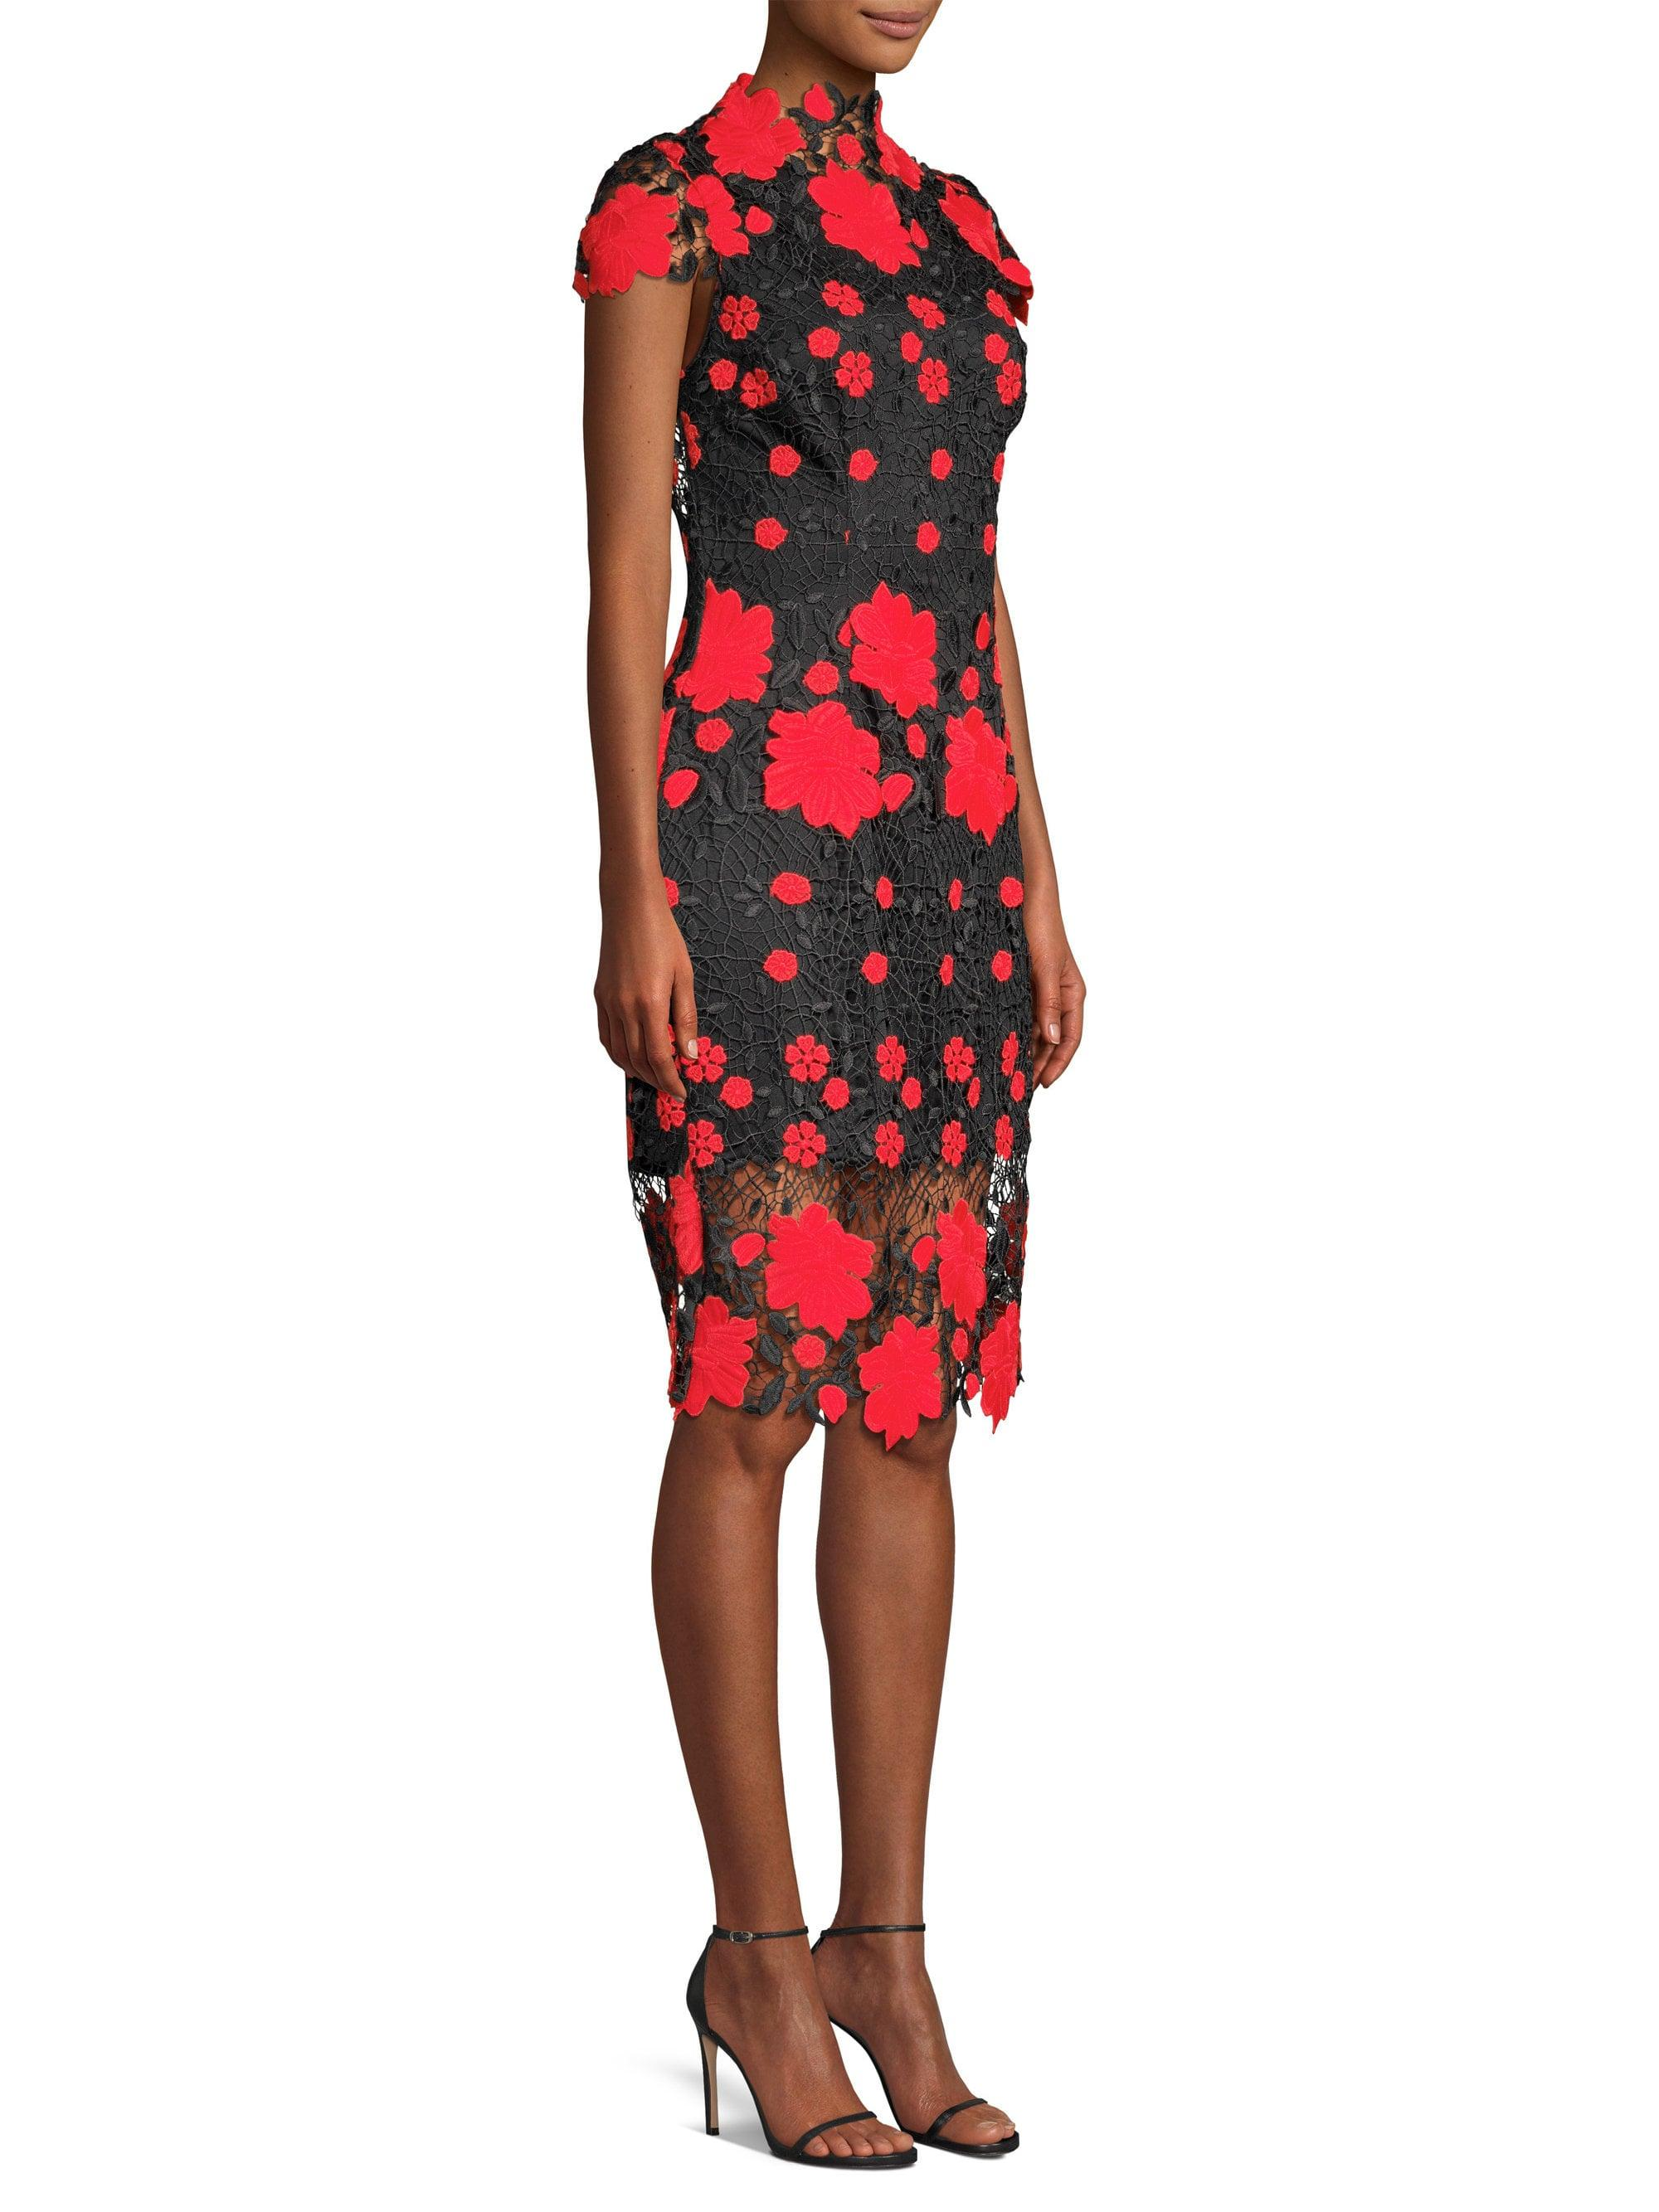 Lyst - Laundry by Shelli Segal Floral High-neck Sheath Dress in Red 9ed6b02c79